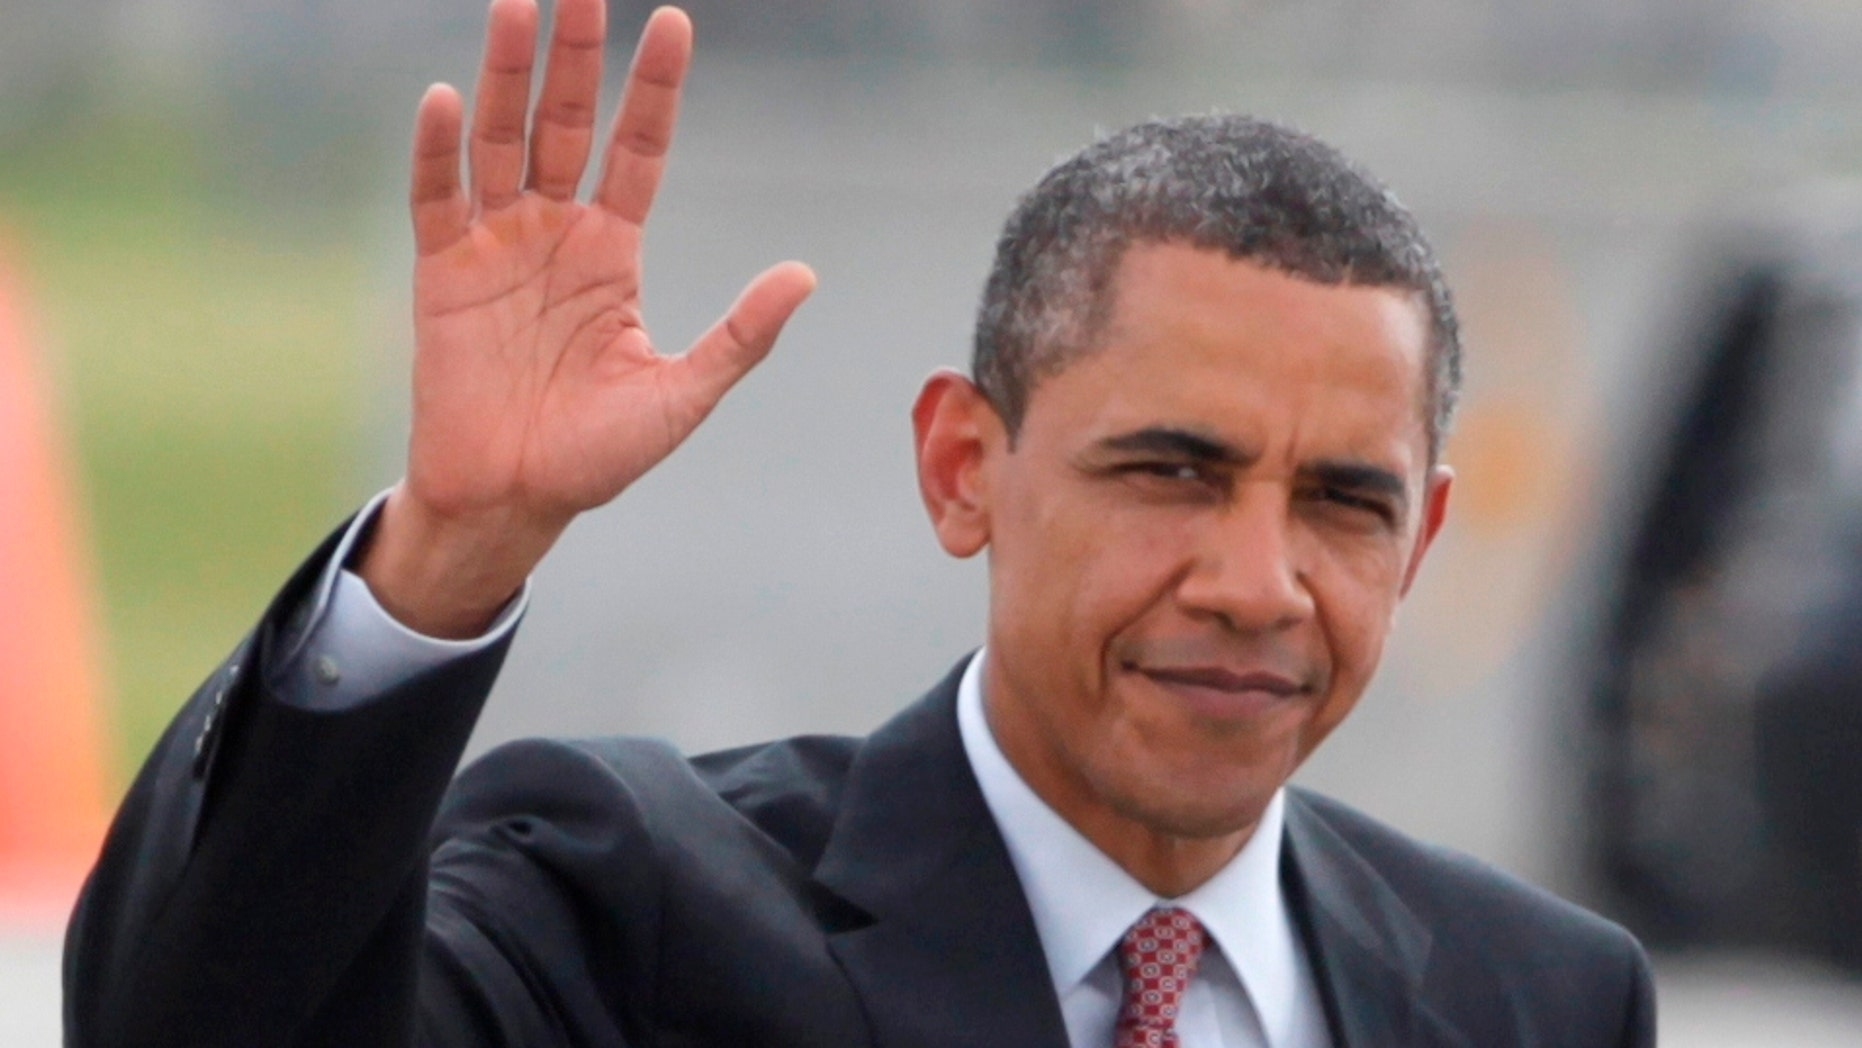 President Barack Obama waves as he walks across the tarmac to board Air Force One Thursday, June 23, 2011, in Fort Drum, N.Y., en route to New York City. (AP Photo/Carolyn Kaster)